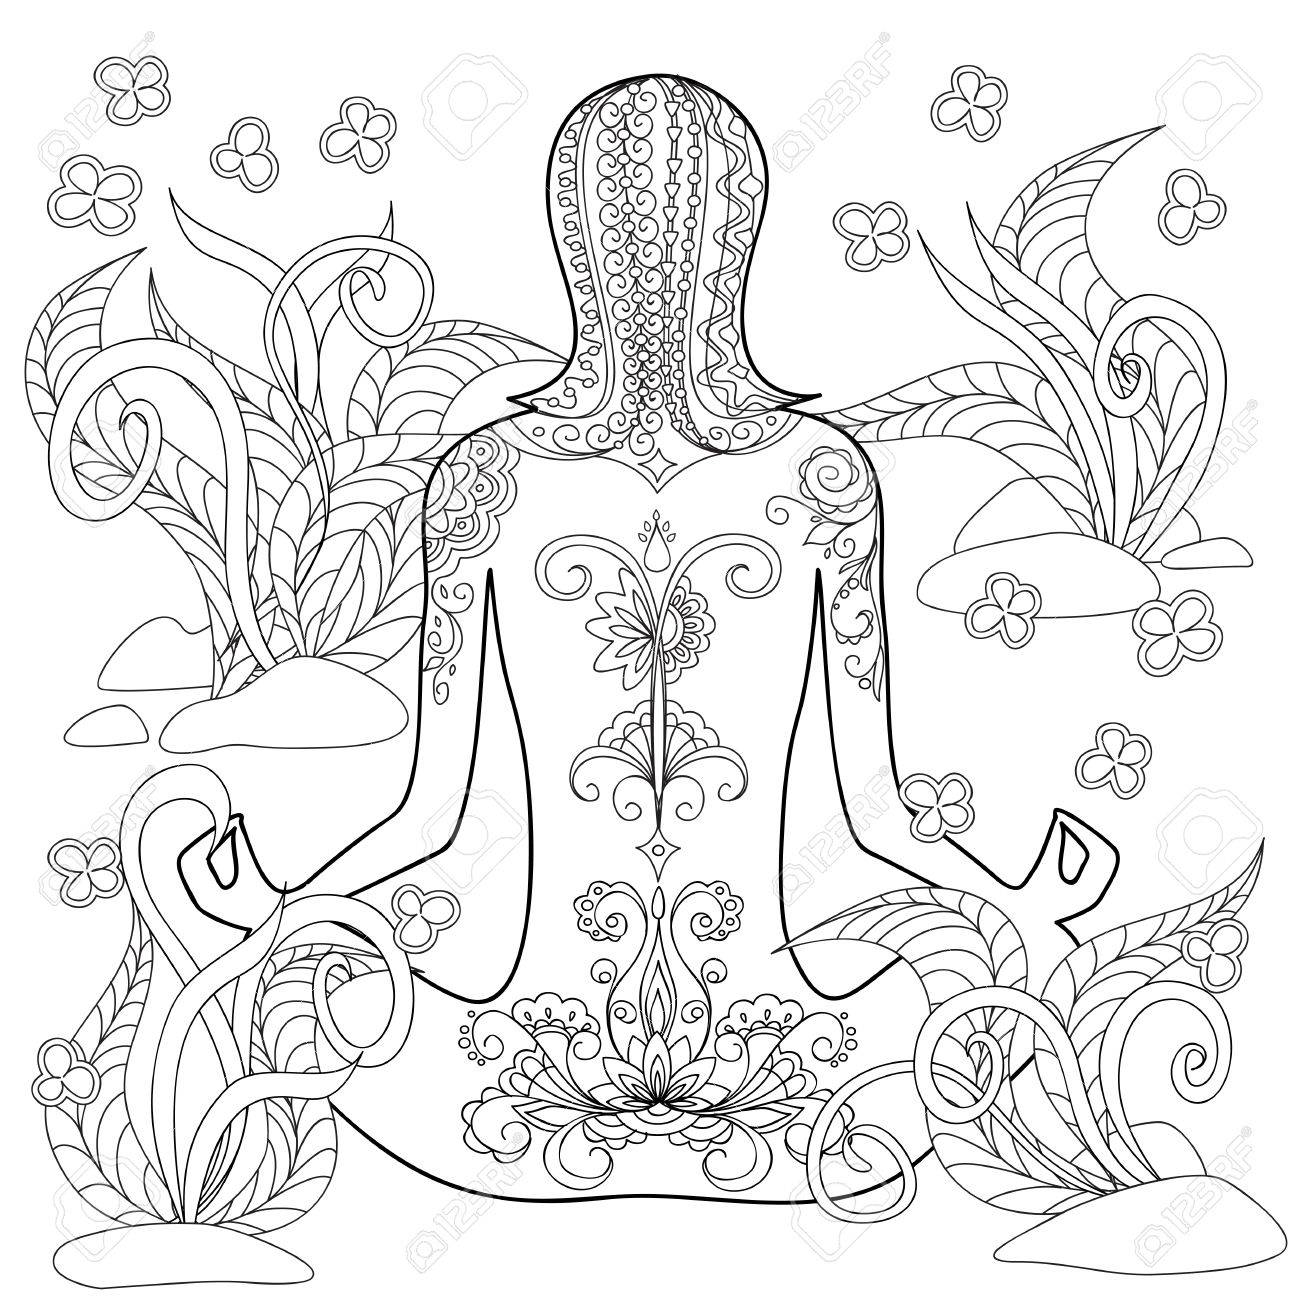 Hand Drawn Decorated Tattoo Girl In The Tangled Flowers Image Royalty Free Cliparts Vectors And Stock Illustration Image 66353121